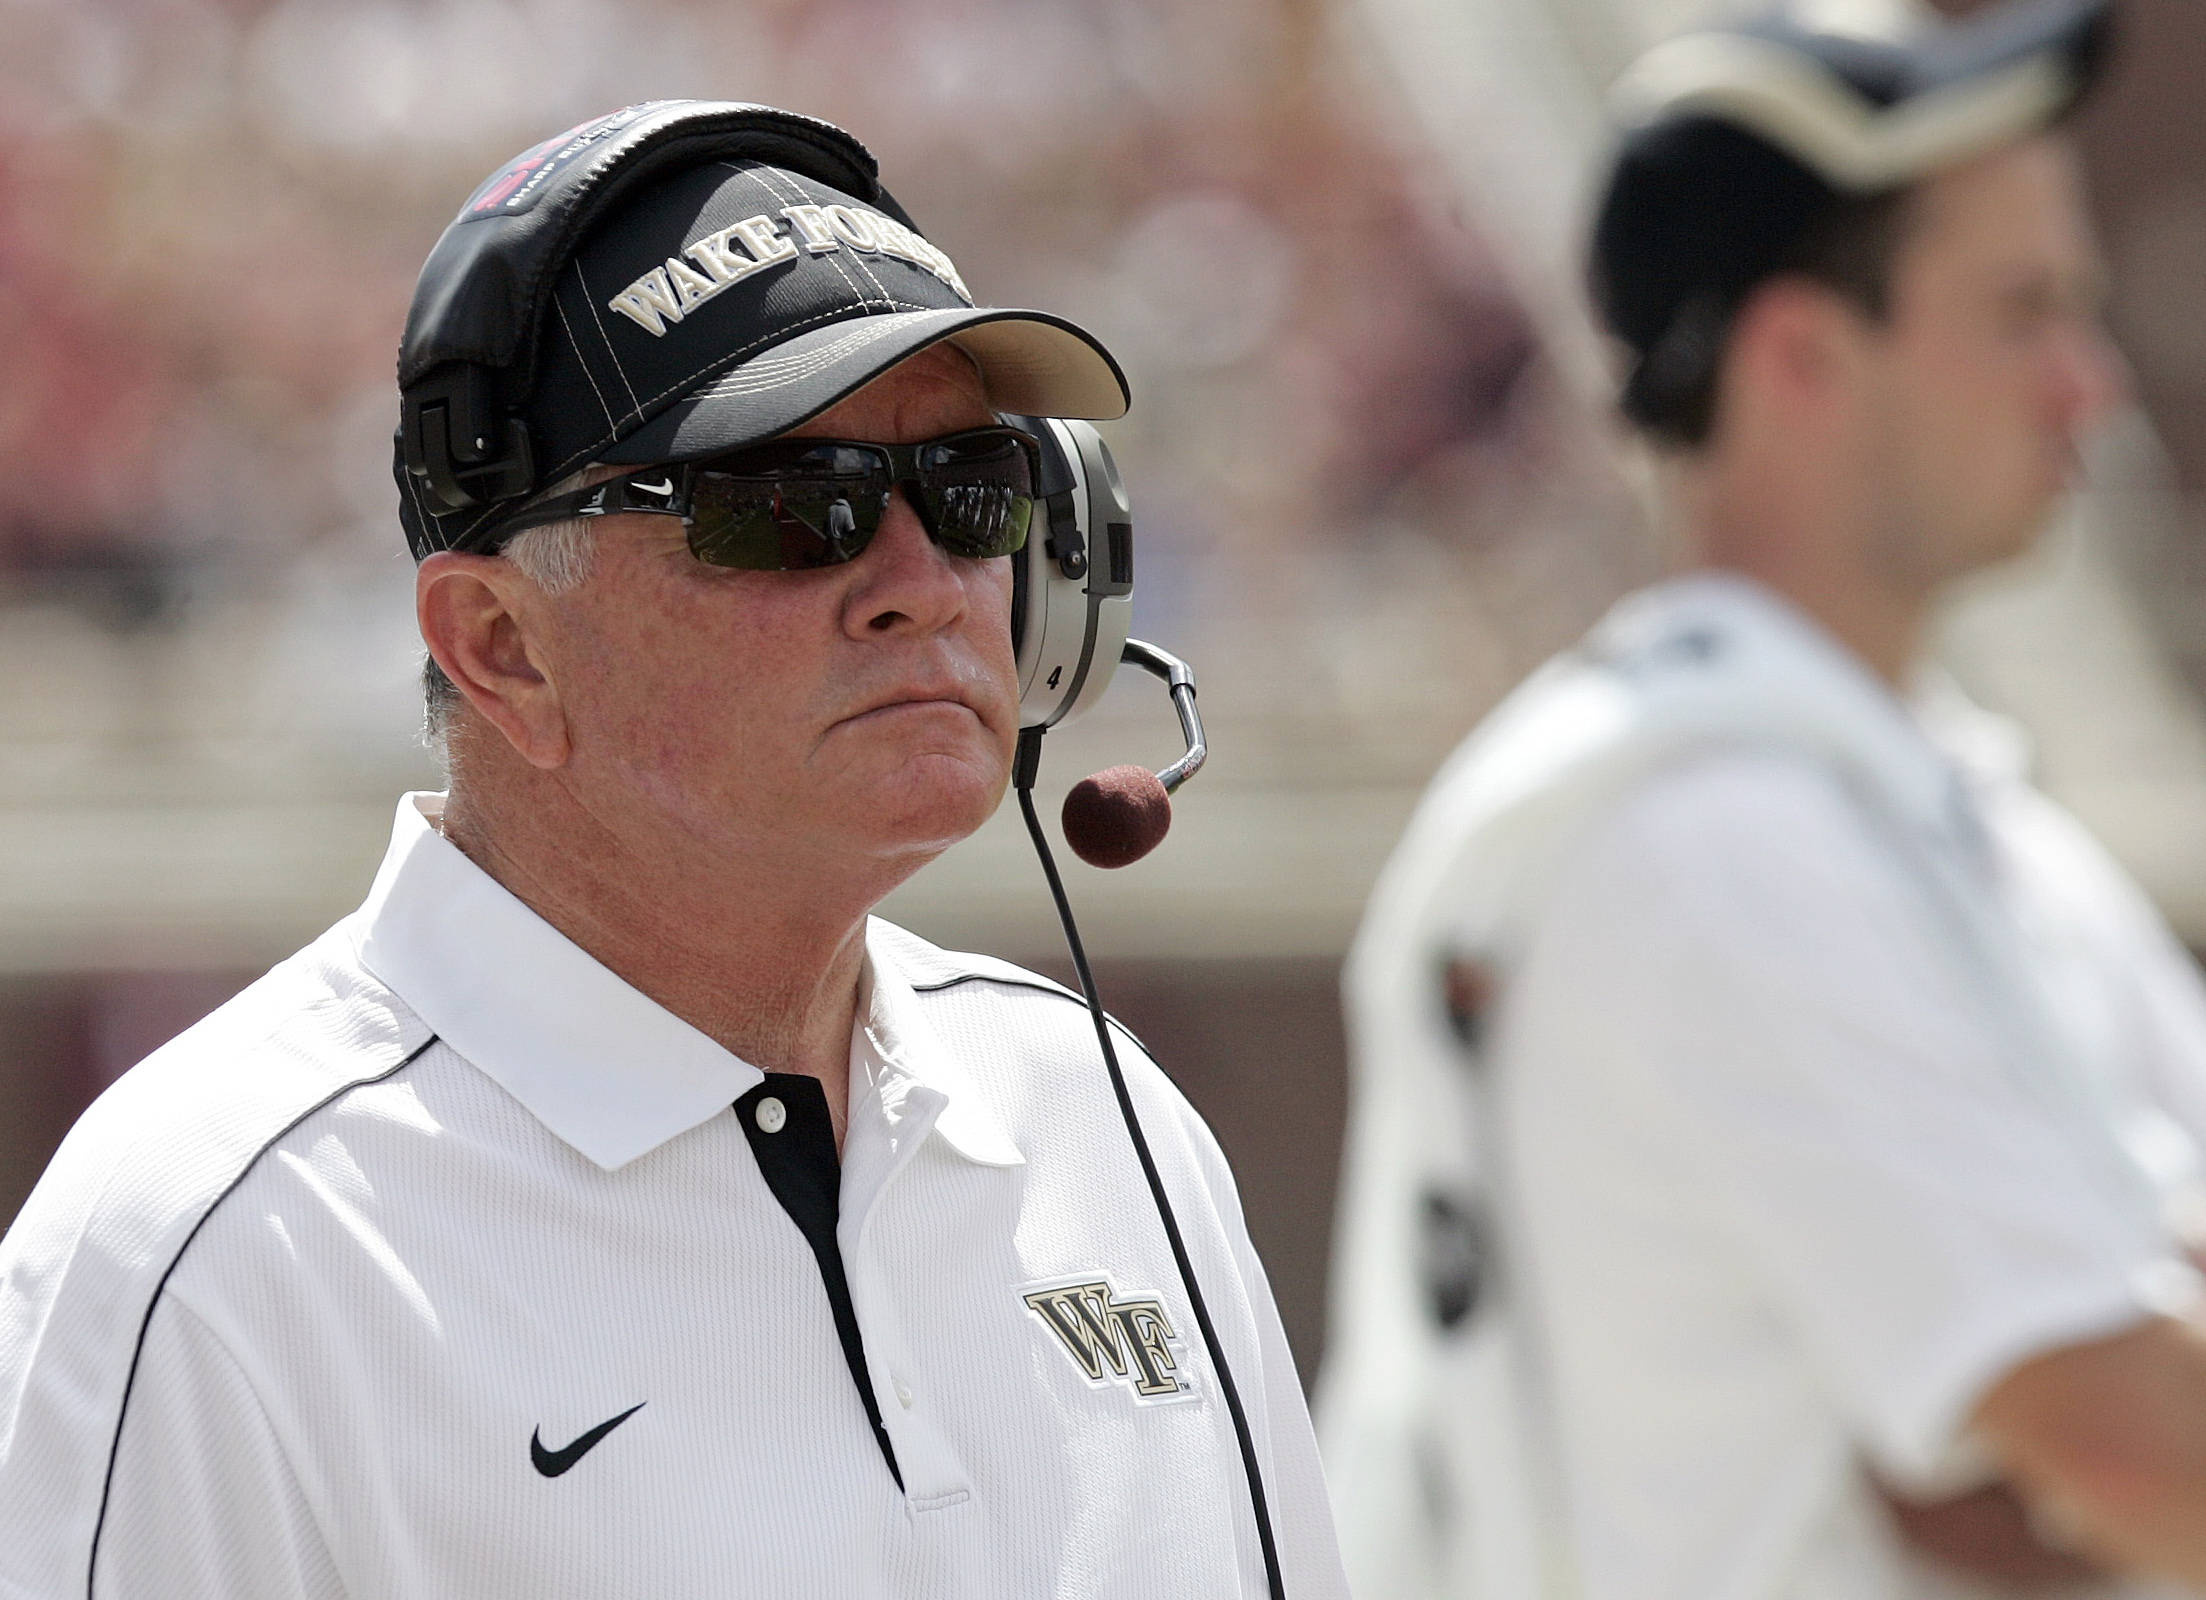 Wake Forest head coach Jim Grobe watches from the sideline. (AP Photo/Steve Cannon)